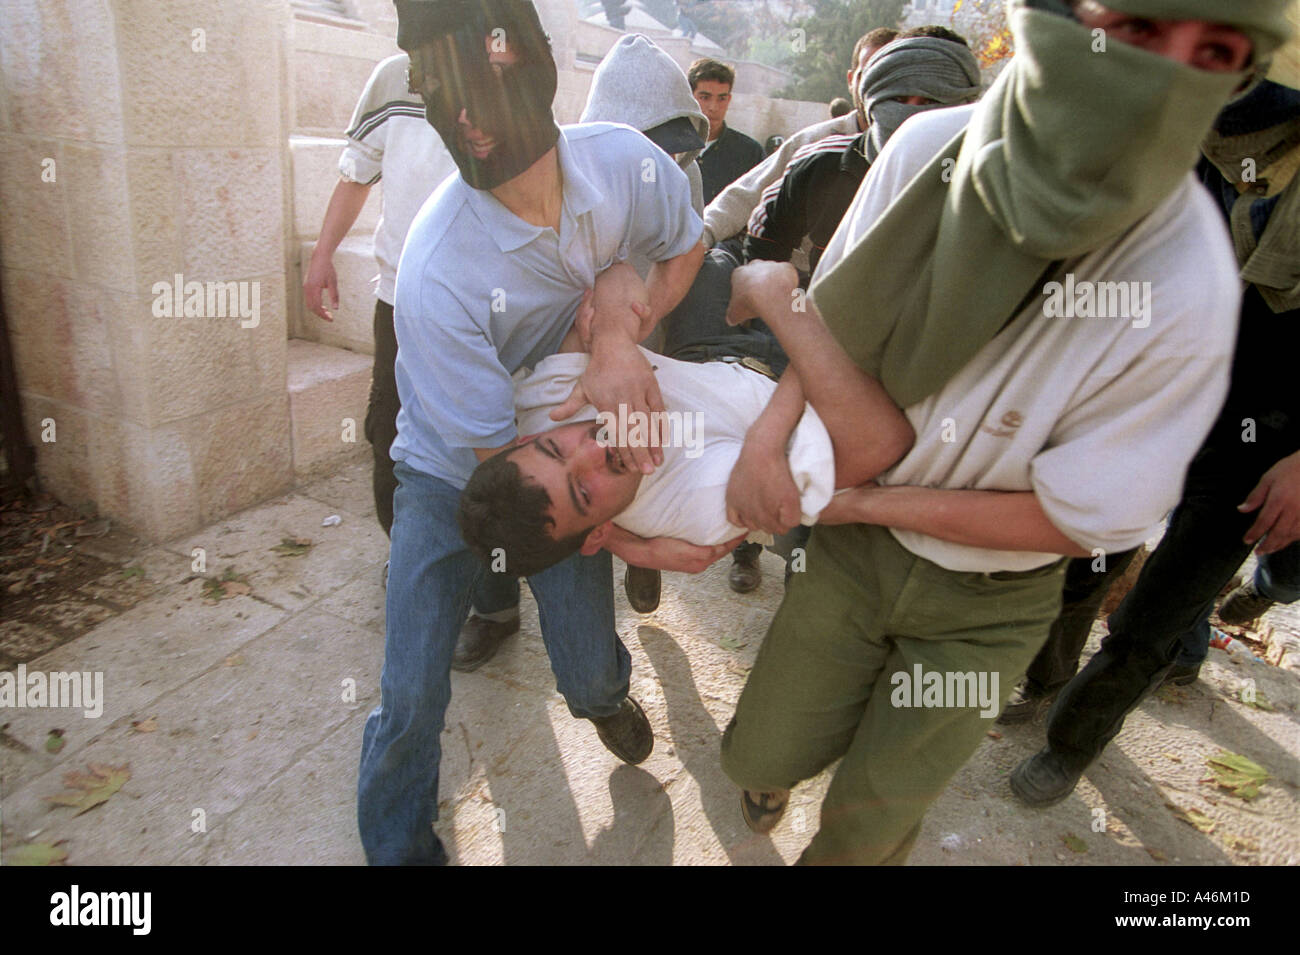 al aqsa mosque clash a palestinian demonstrator is carried to an ambulance after being shot during a clash with - Stock Image